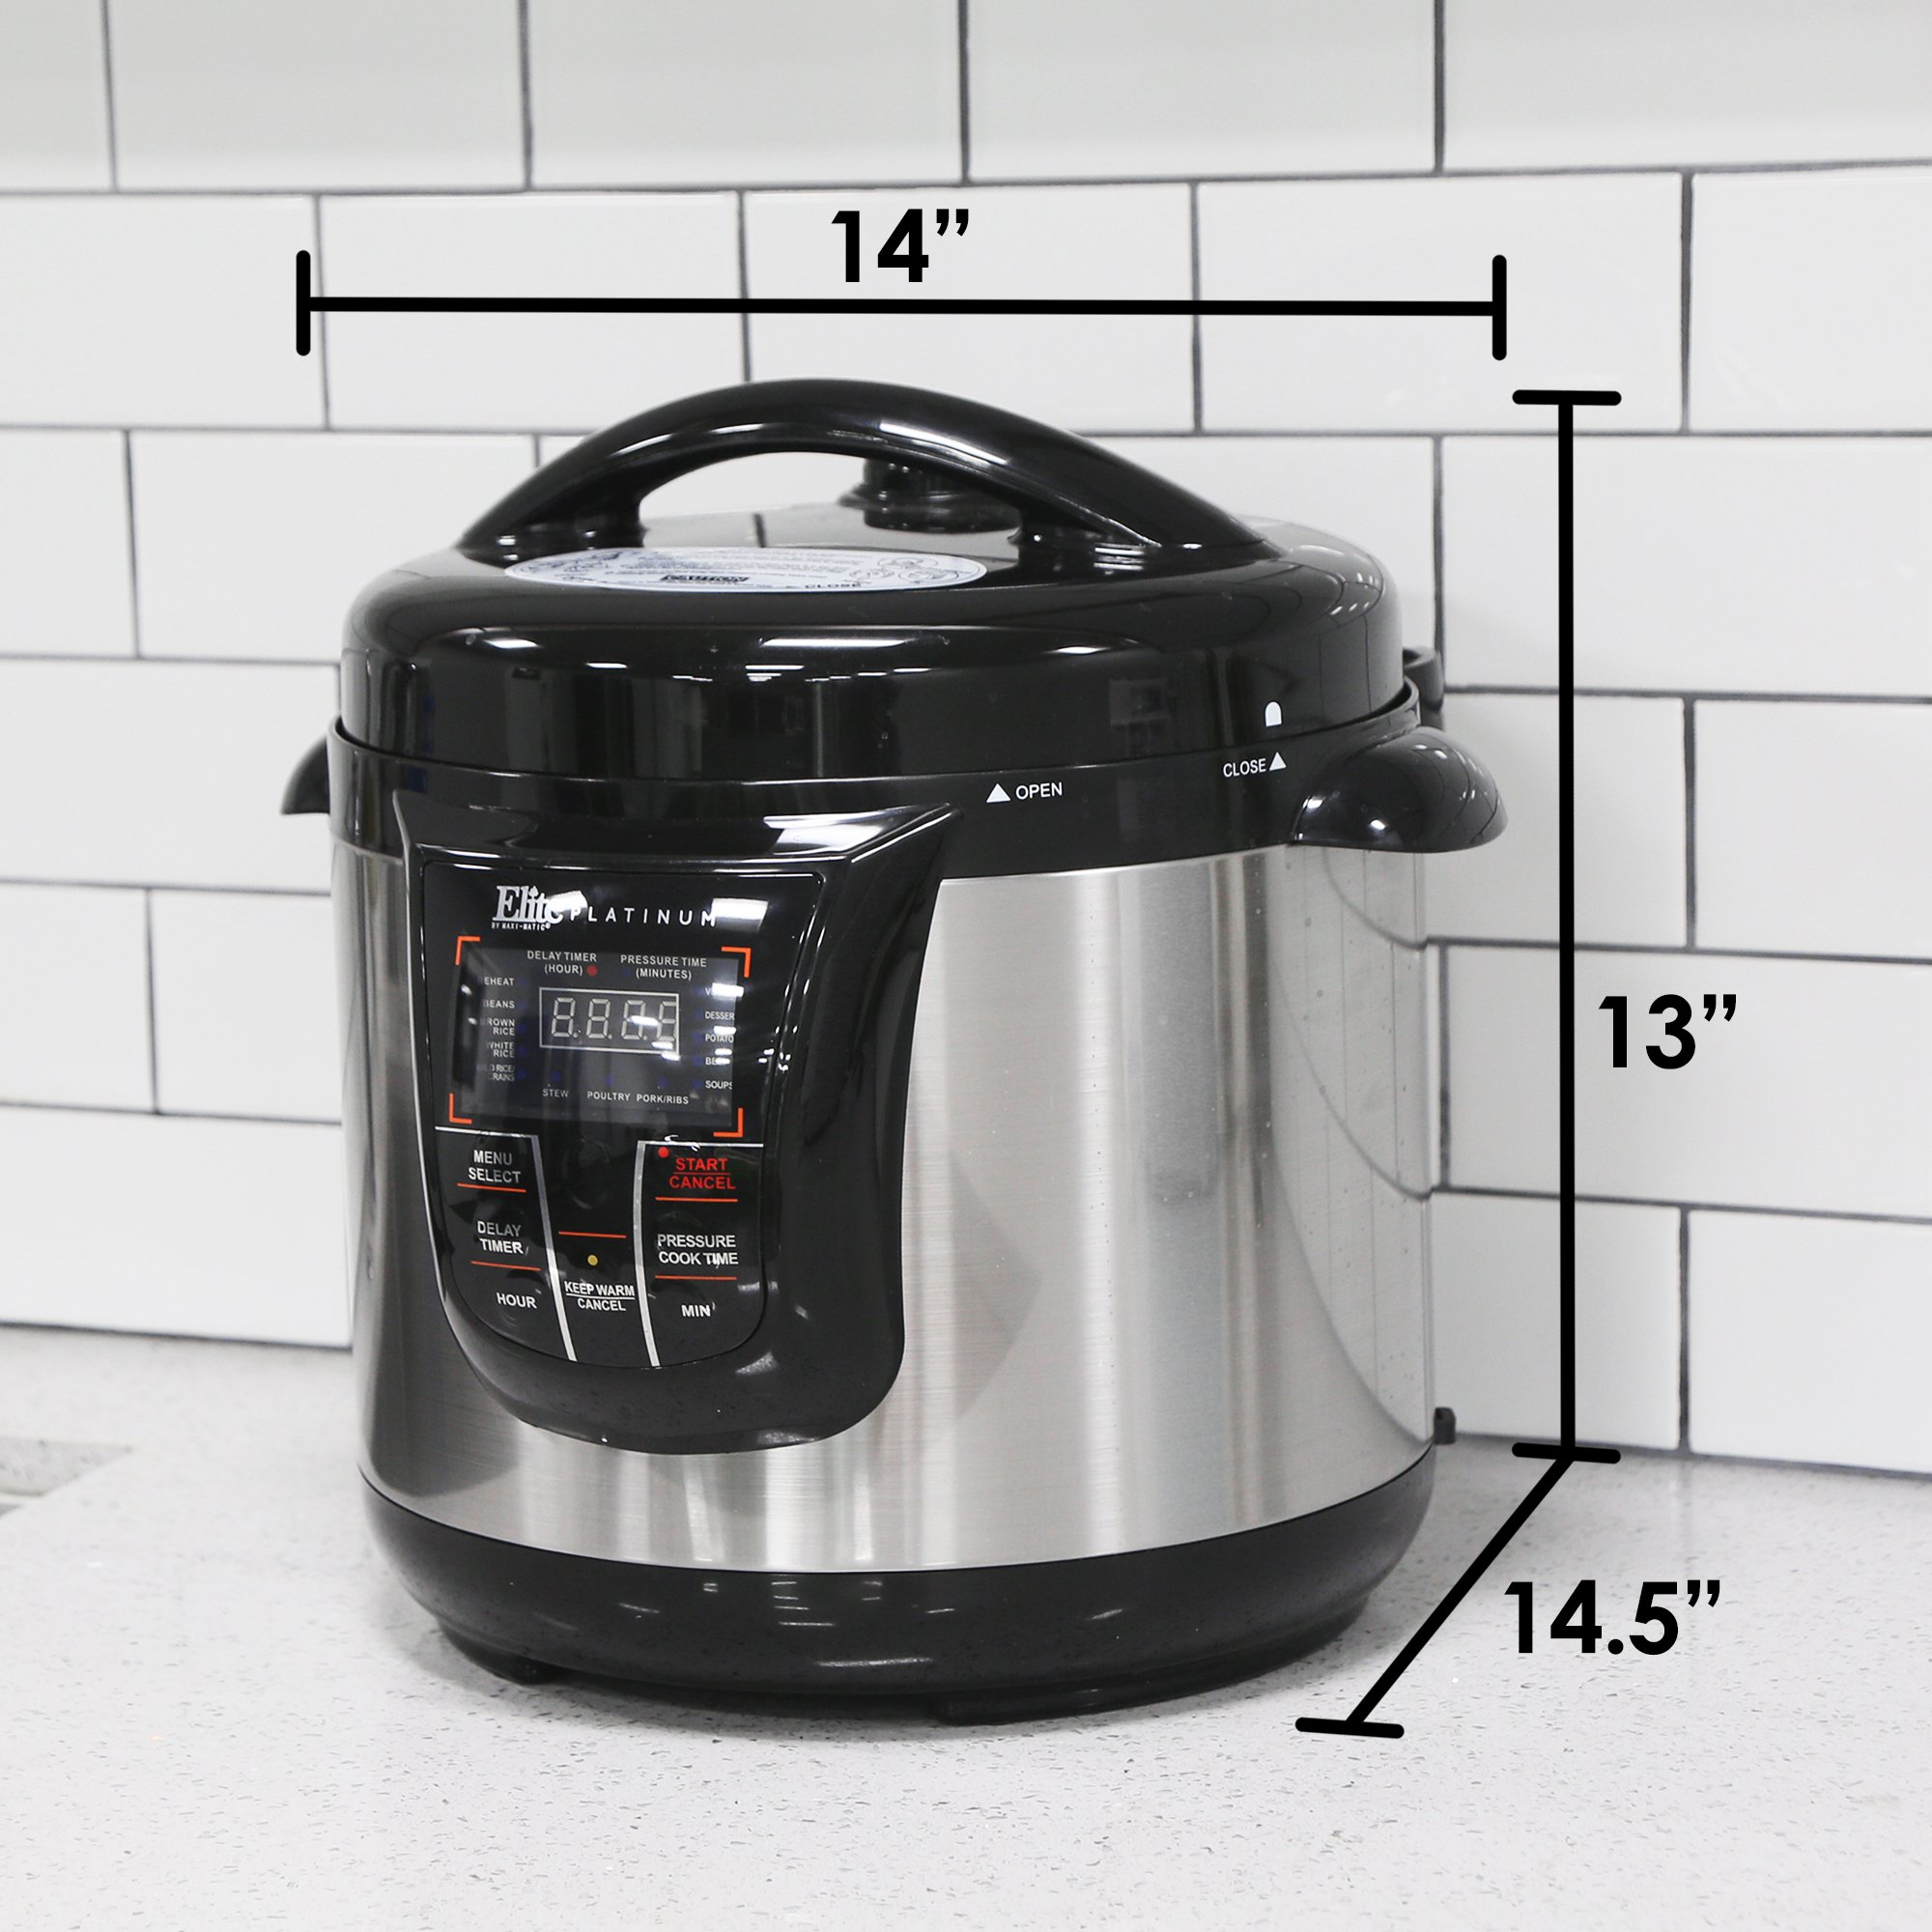 Elite Platinum 8 Quart 14-in-1 Multi-Use Programmable Pressure Cooker, Slow Cooker, Rice Cooker, Sauté, and Warmer - Black by Maxi-Matic (Image #3)